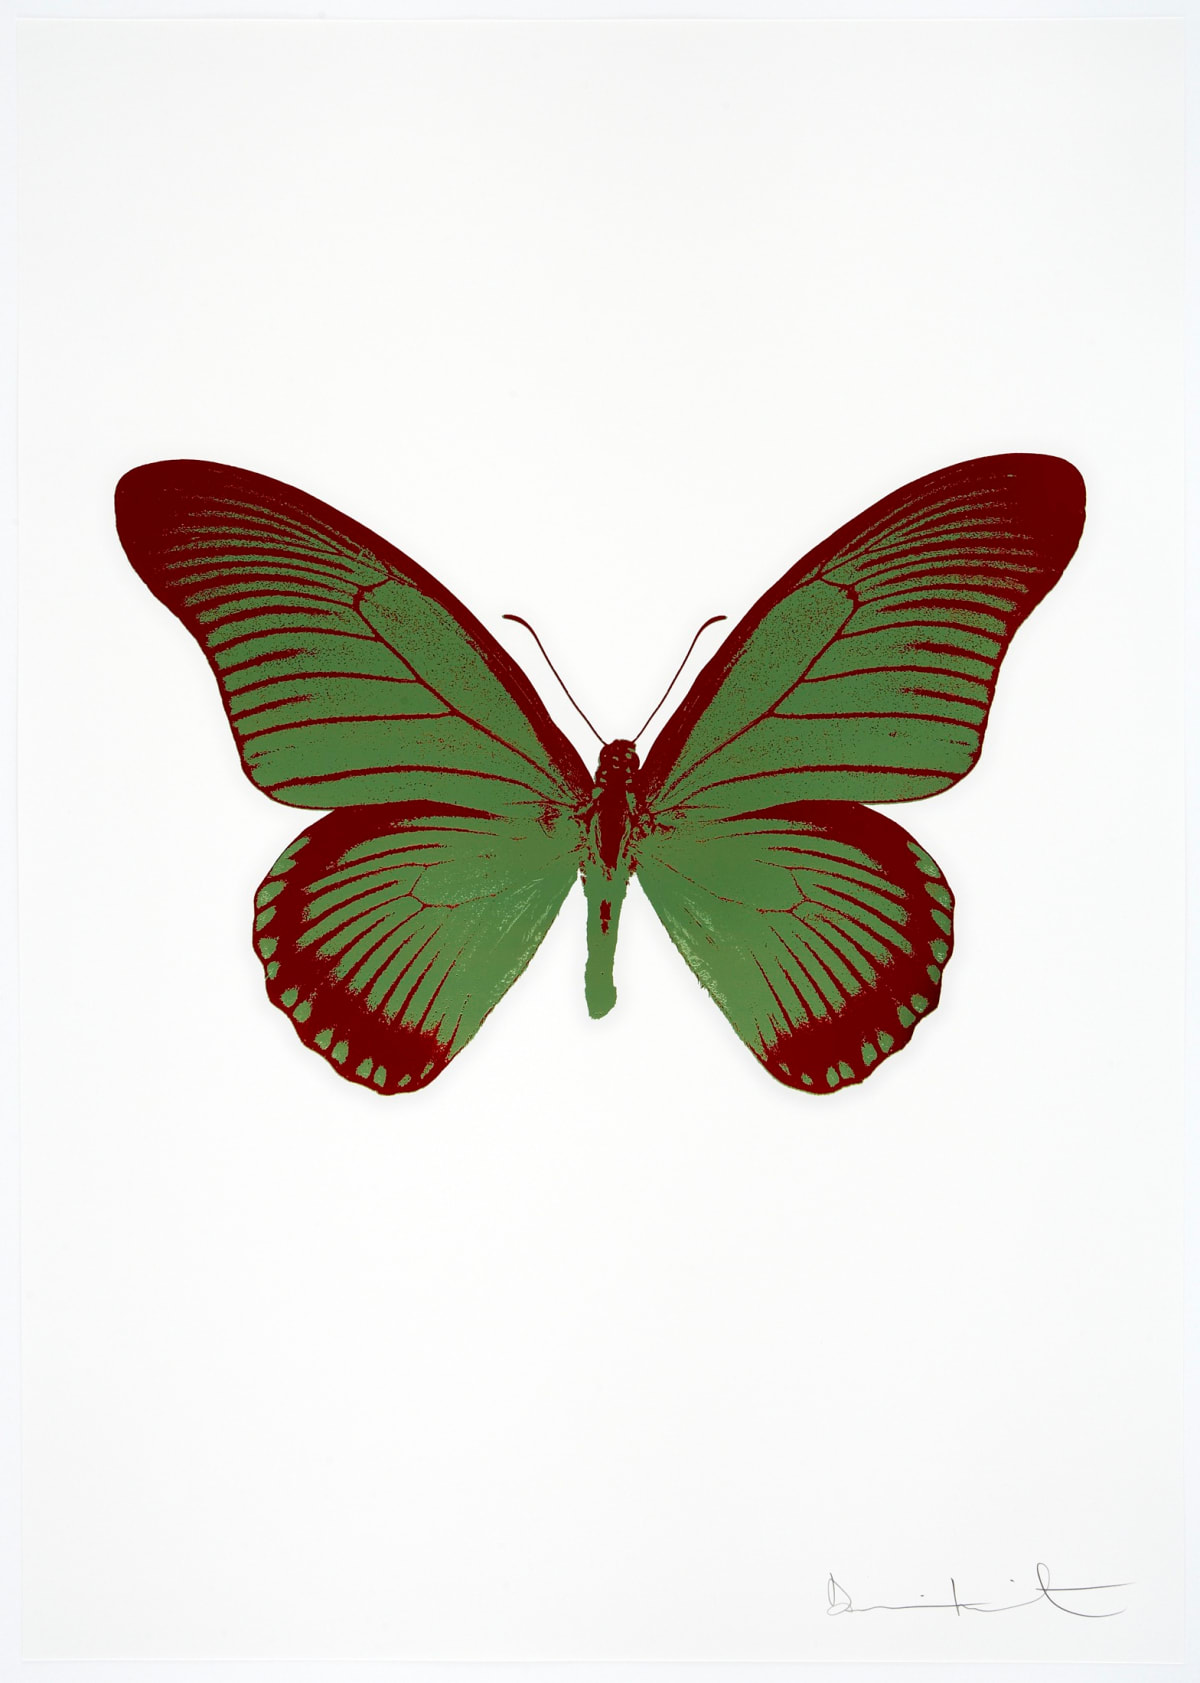 Damien Hirst The Souls IV - Leaf Green/Chilli Red Damien Hirst butterfly foil print for sale Damien Hirst print for sale , 2010 2 colour foil block on 300gsm Arches 88 archival paper. Signed and numbered. Published by Paul Stolper and Other Criteria 72 x 51cm OC8002 / 1418-25 Edition of 15